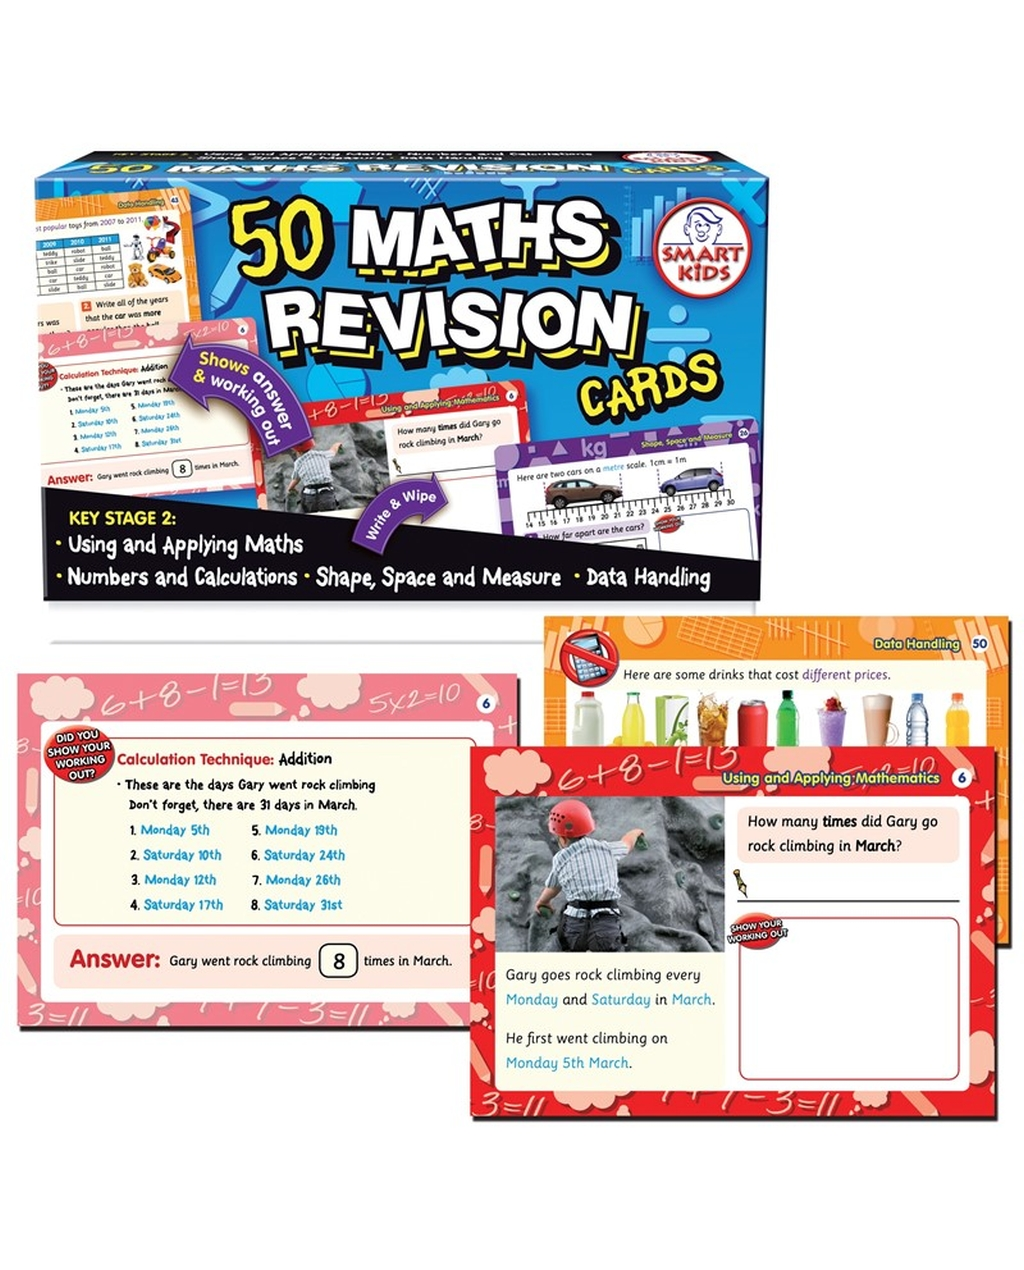 50 Maths Revision Cards